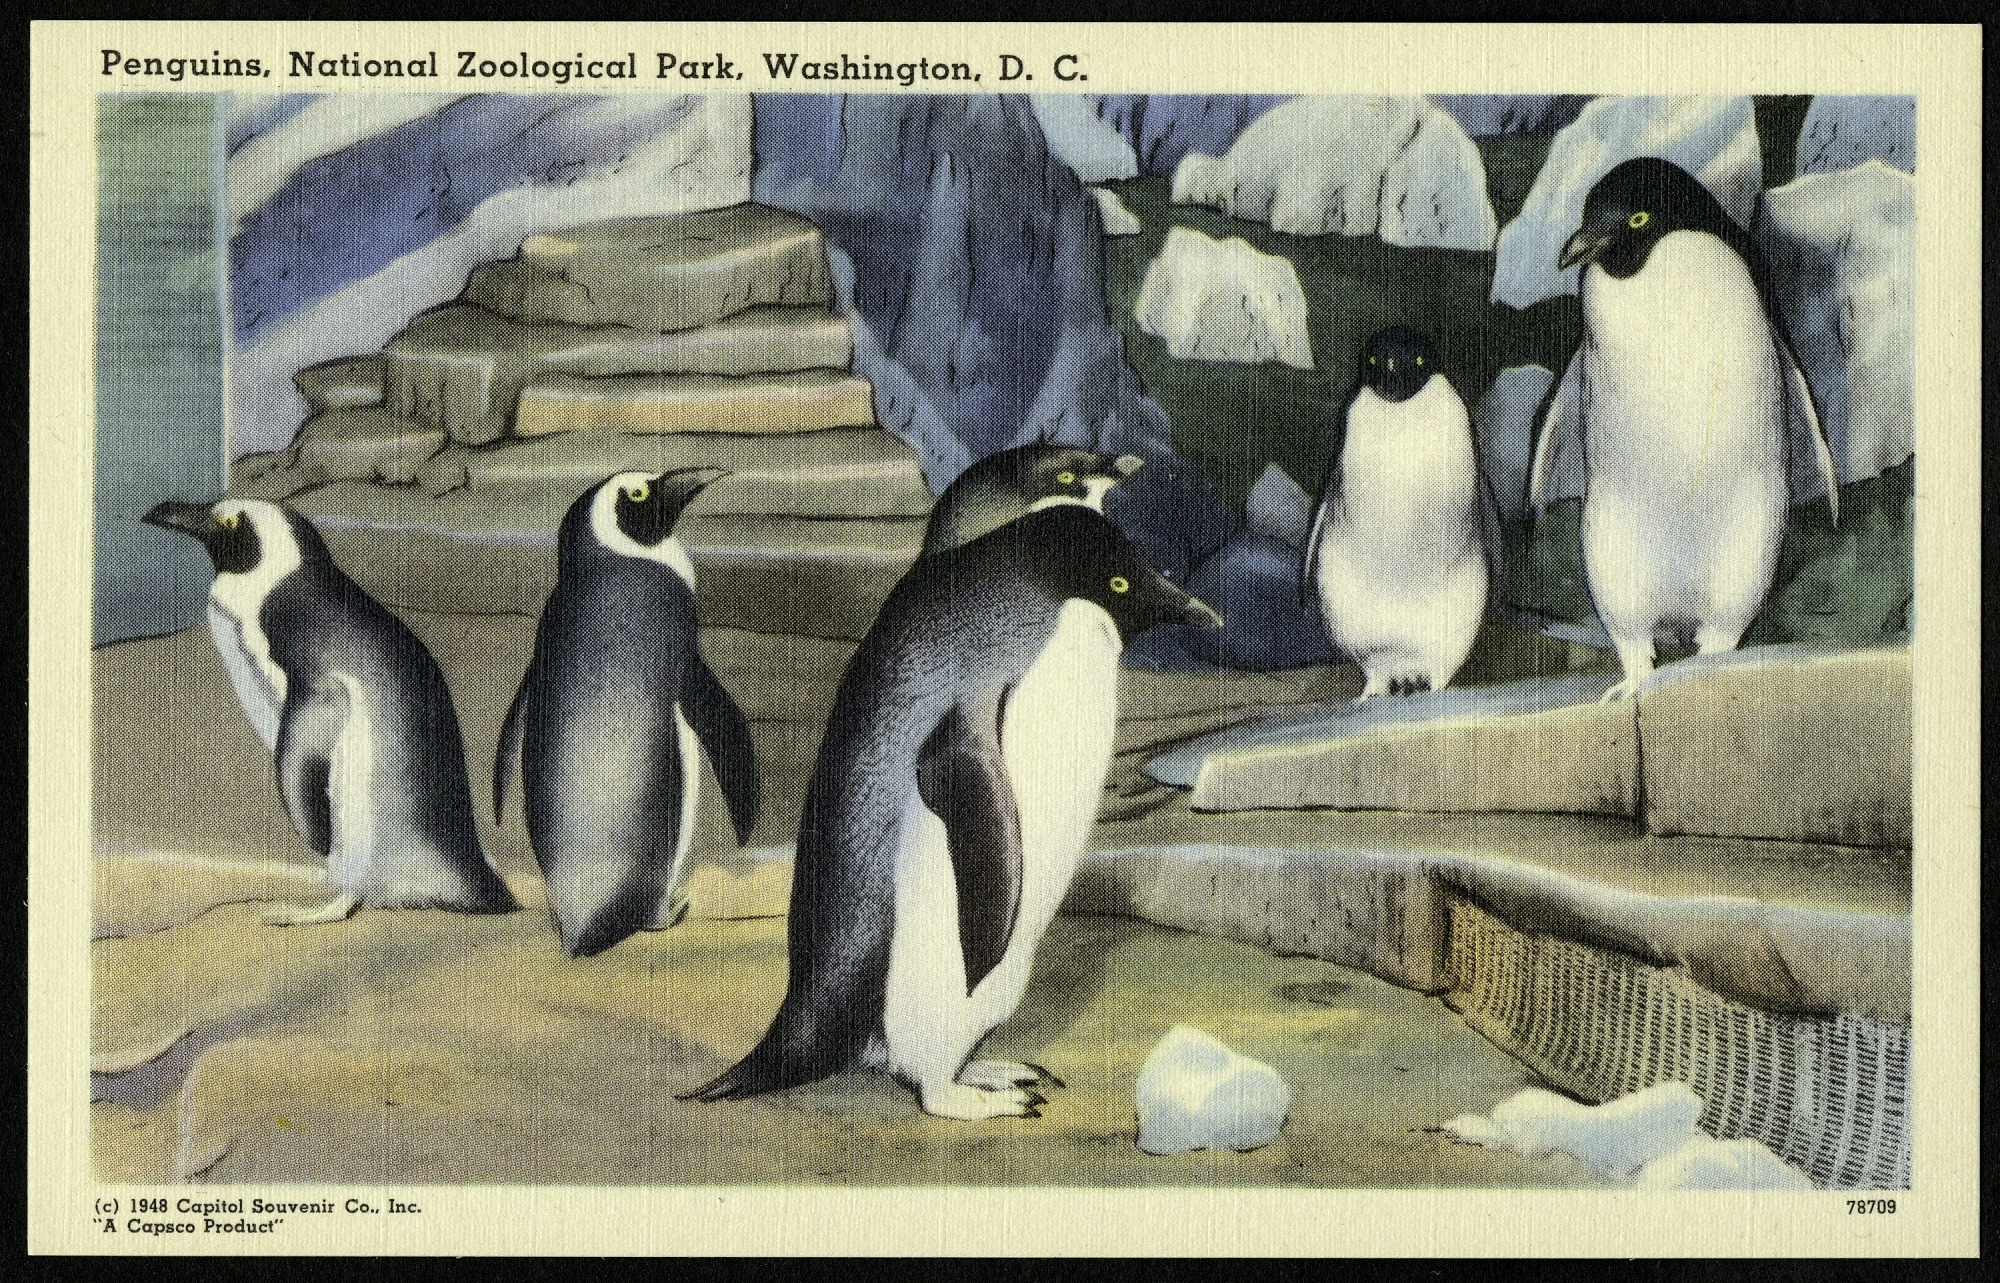 Blank Postcard of Penguins at the Zoo